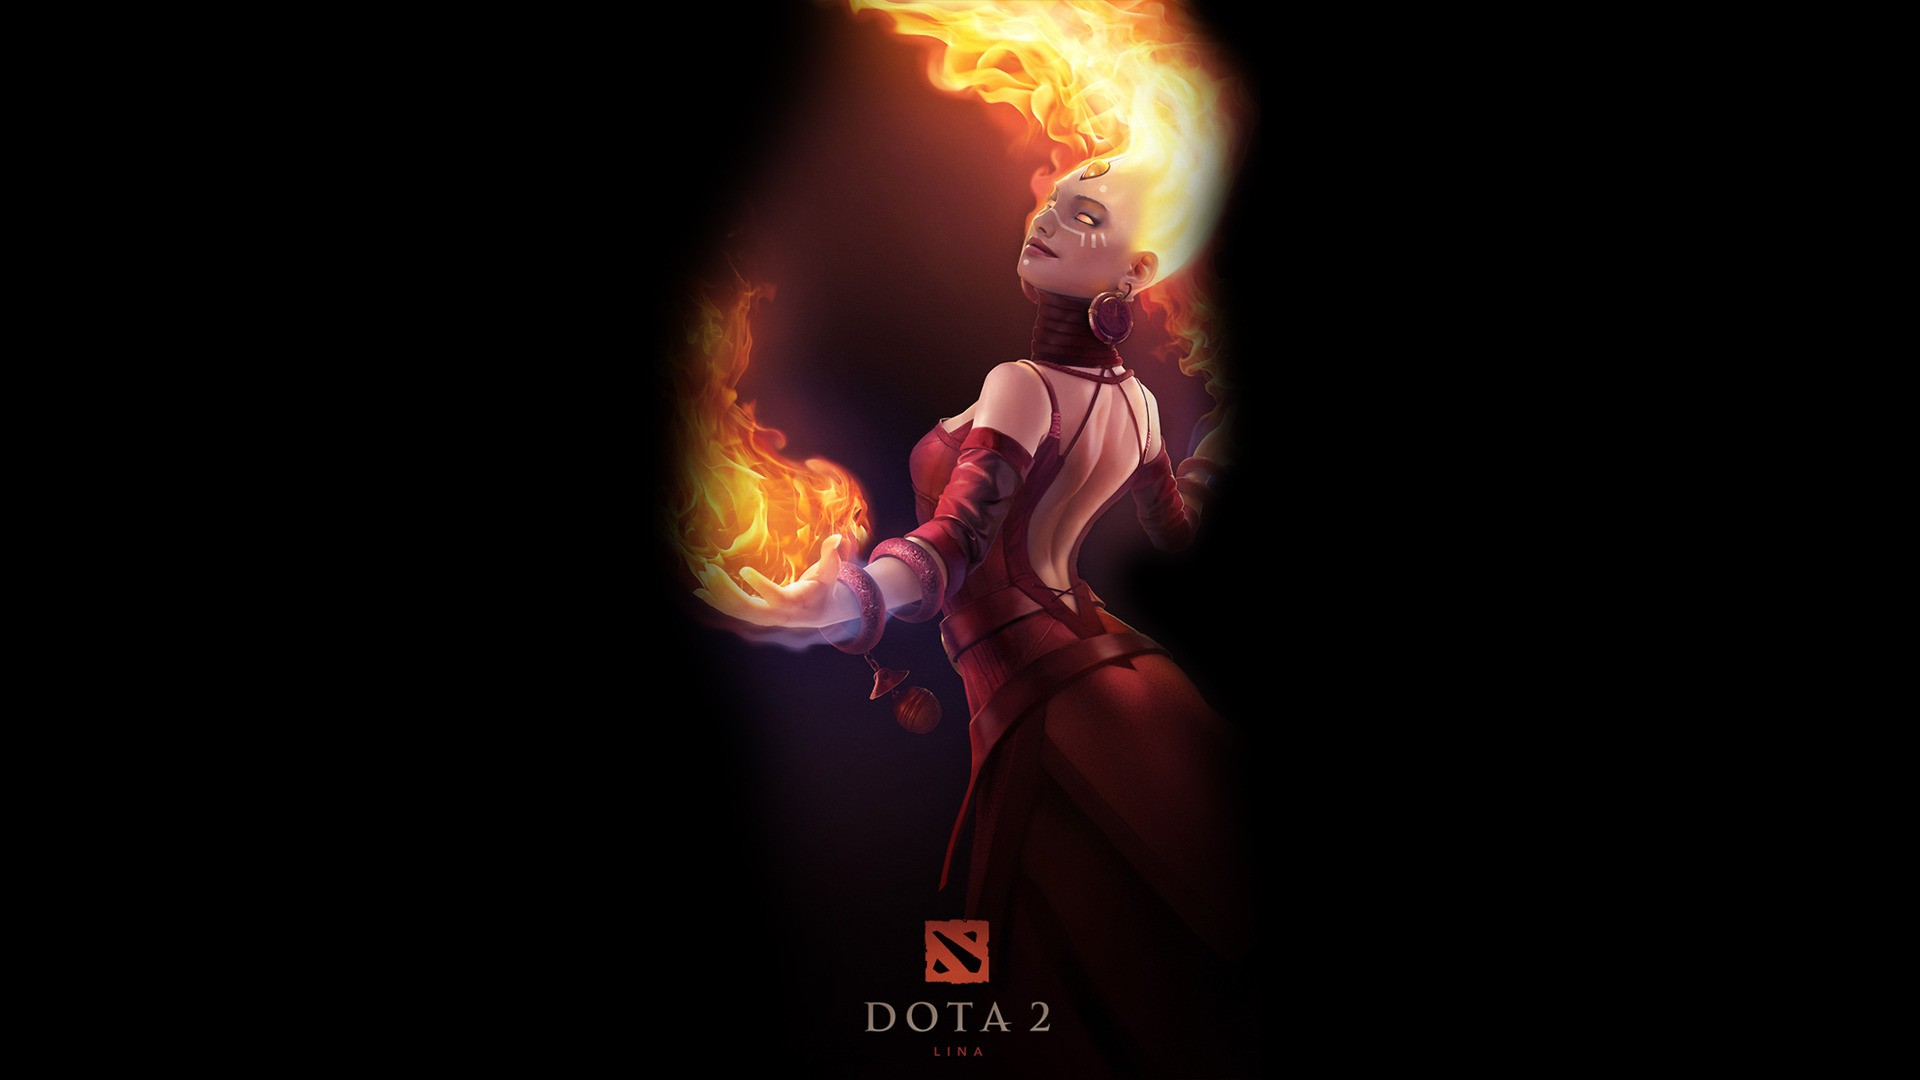 dota 2 latest hd games 4k wallpapers images backgrounds